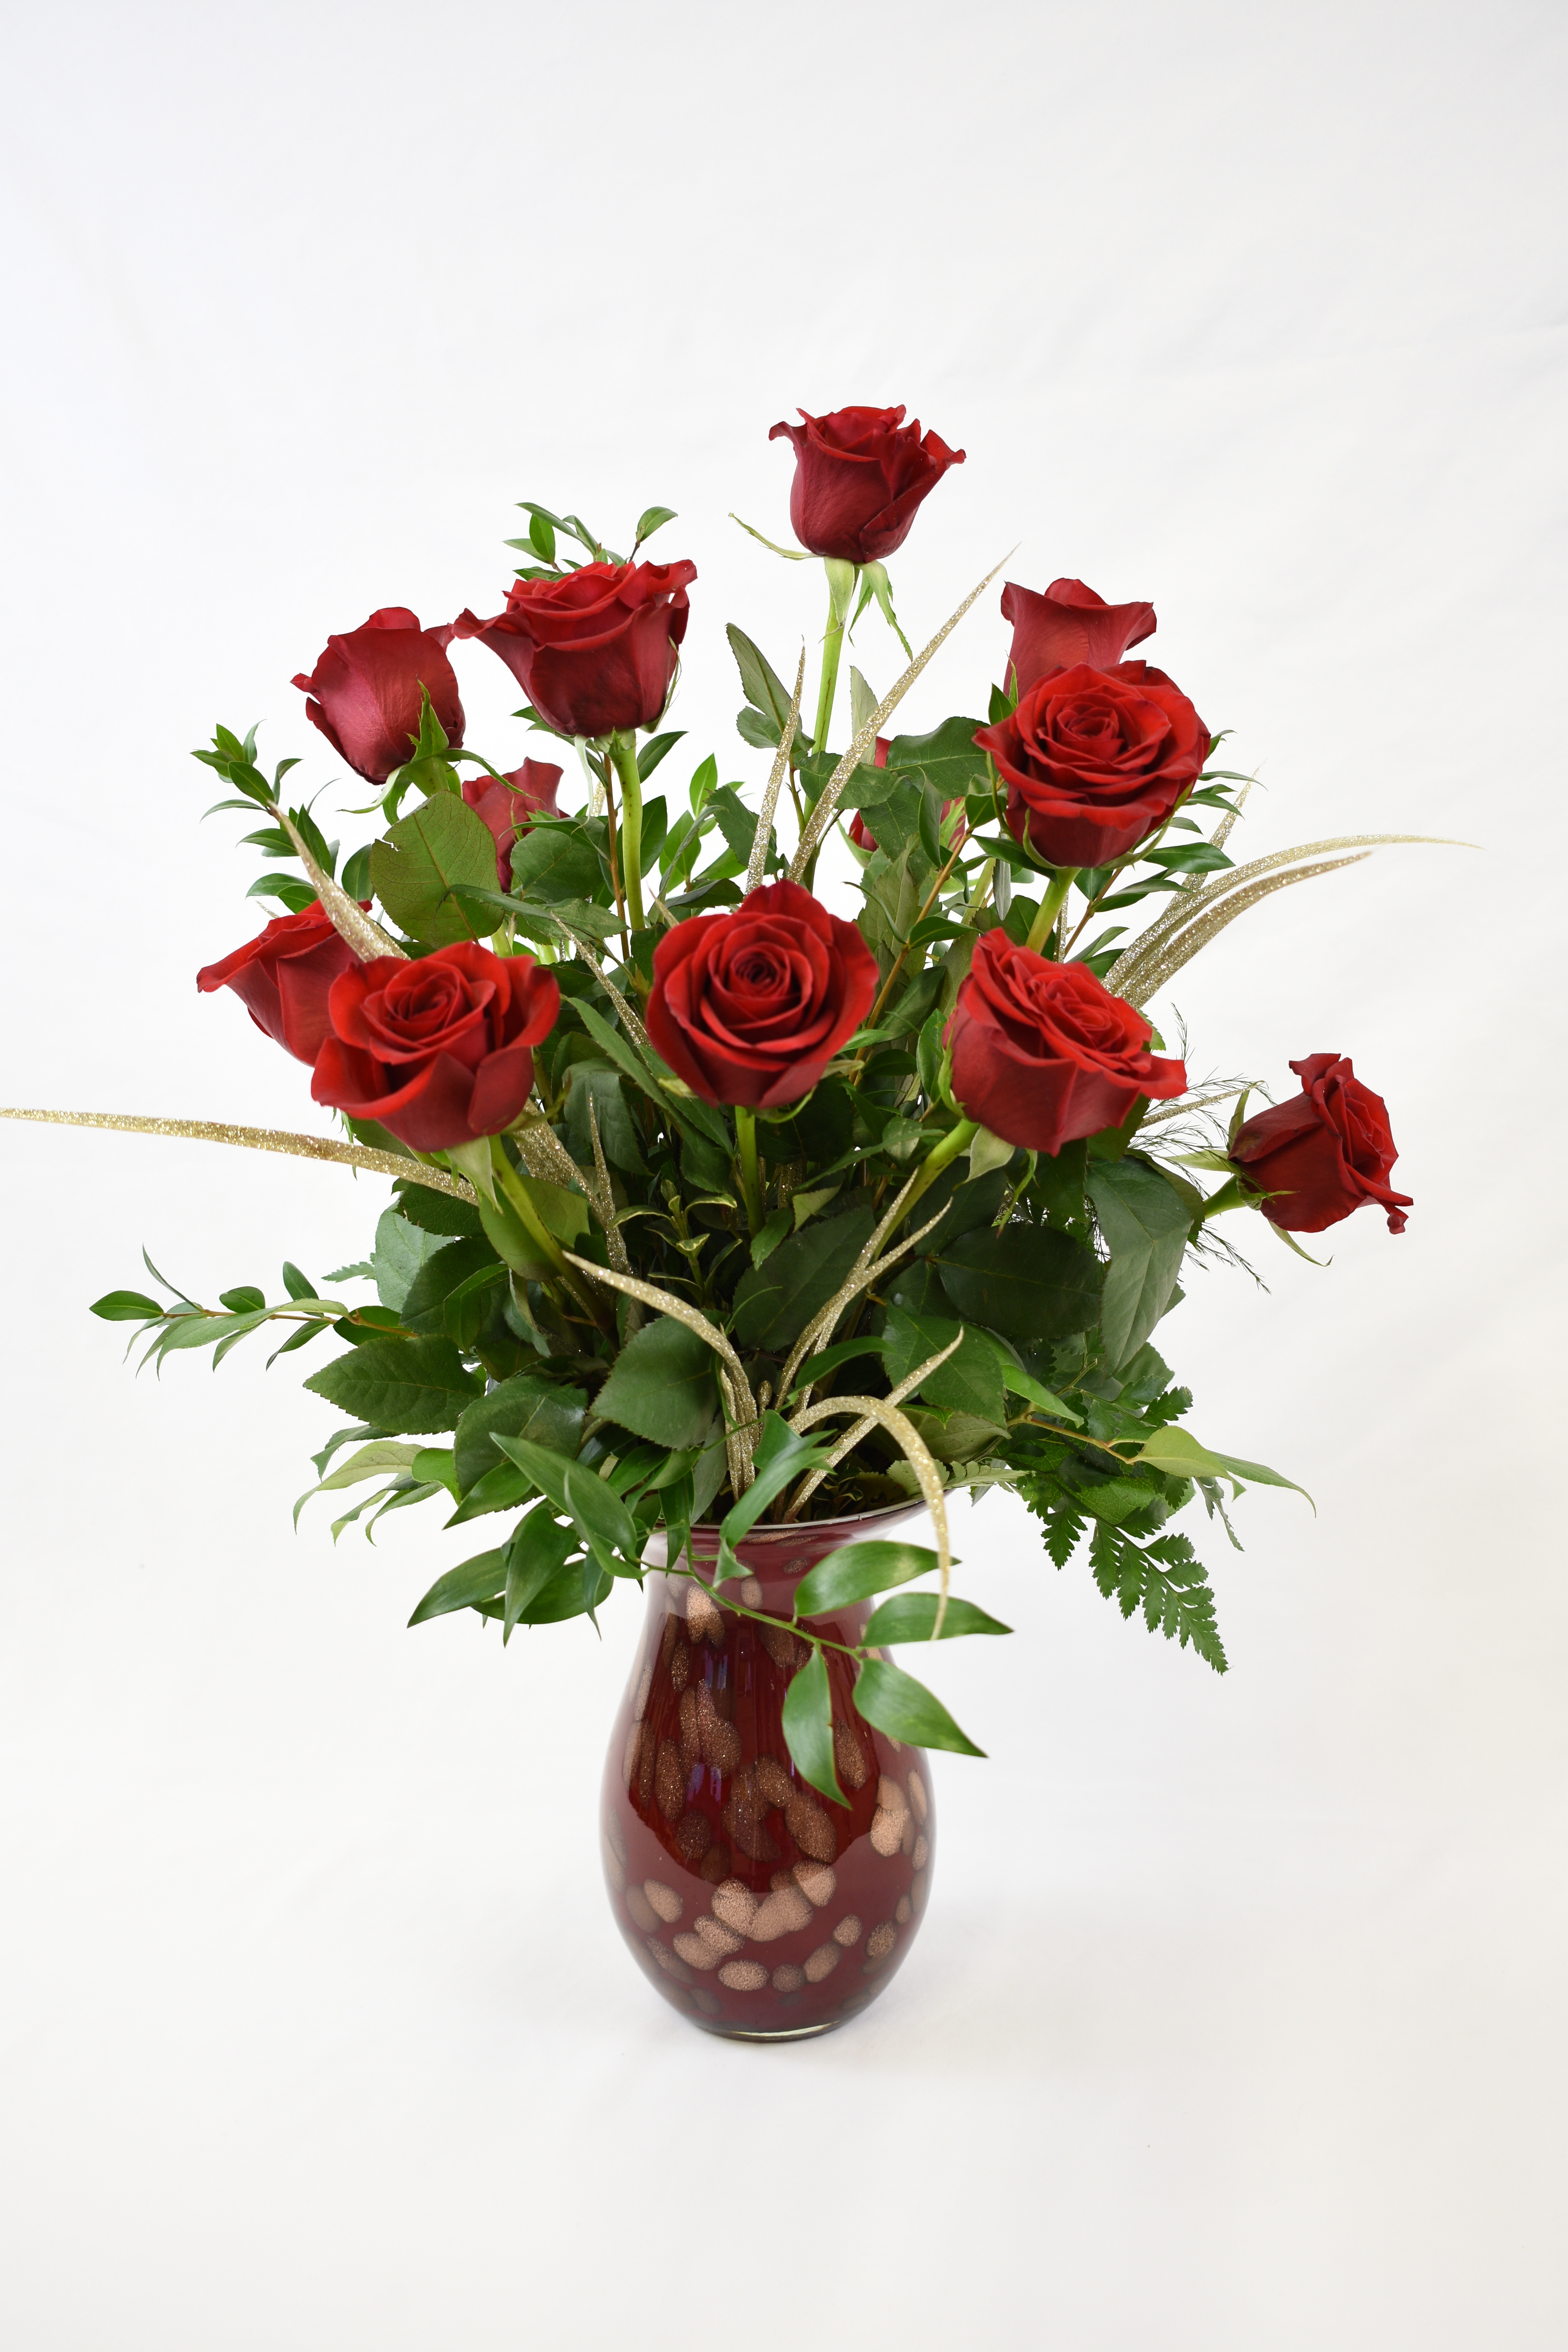 Red roses photo